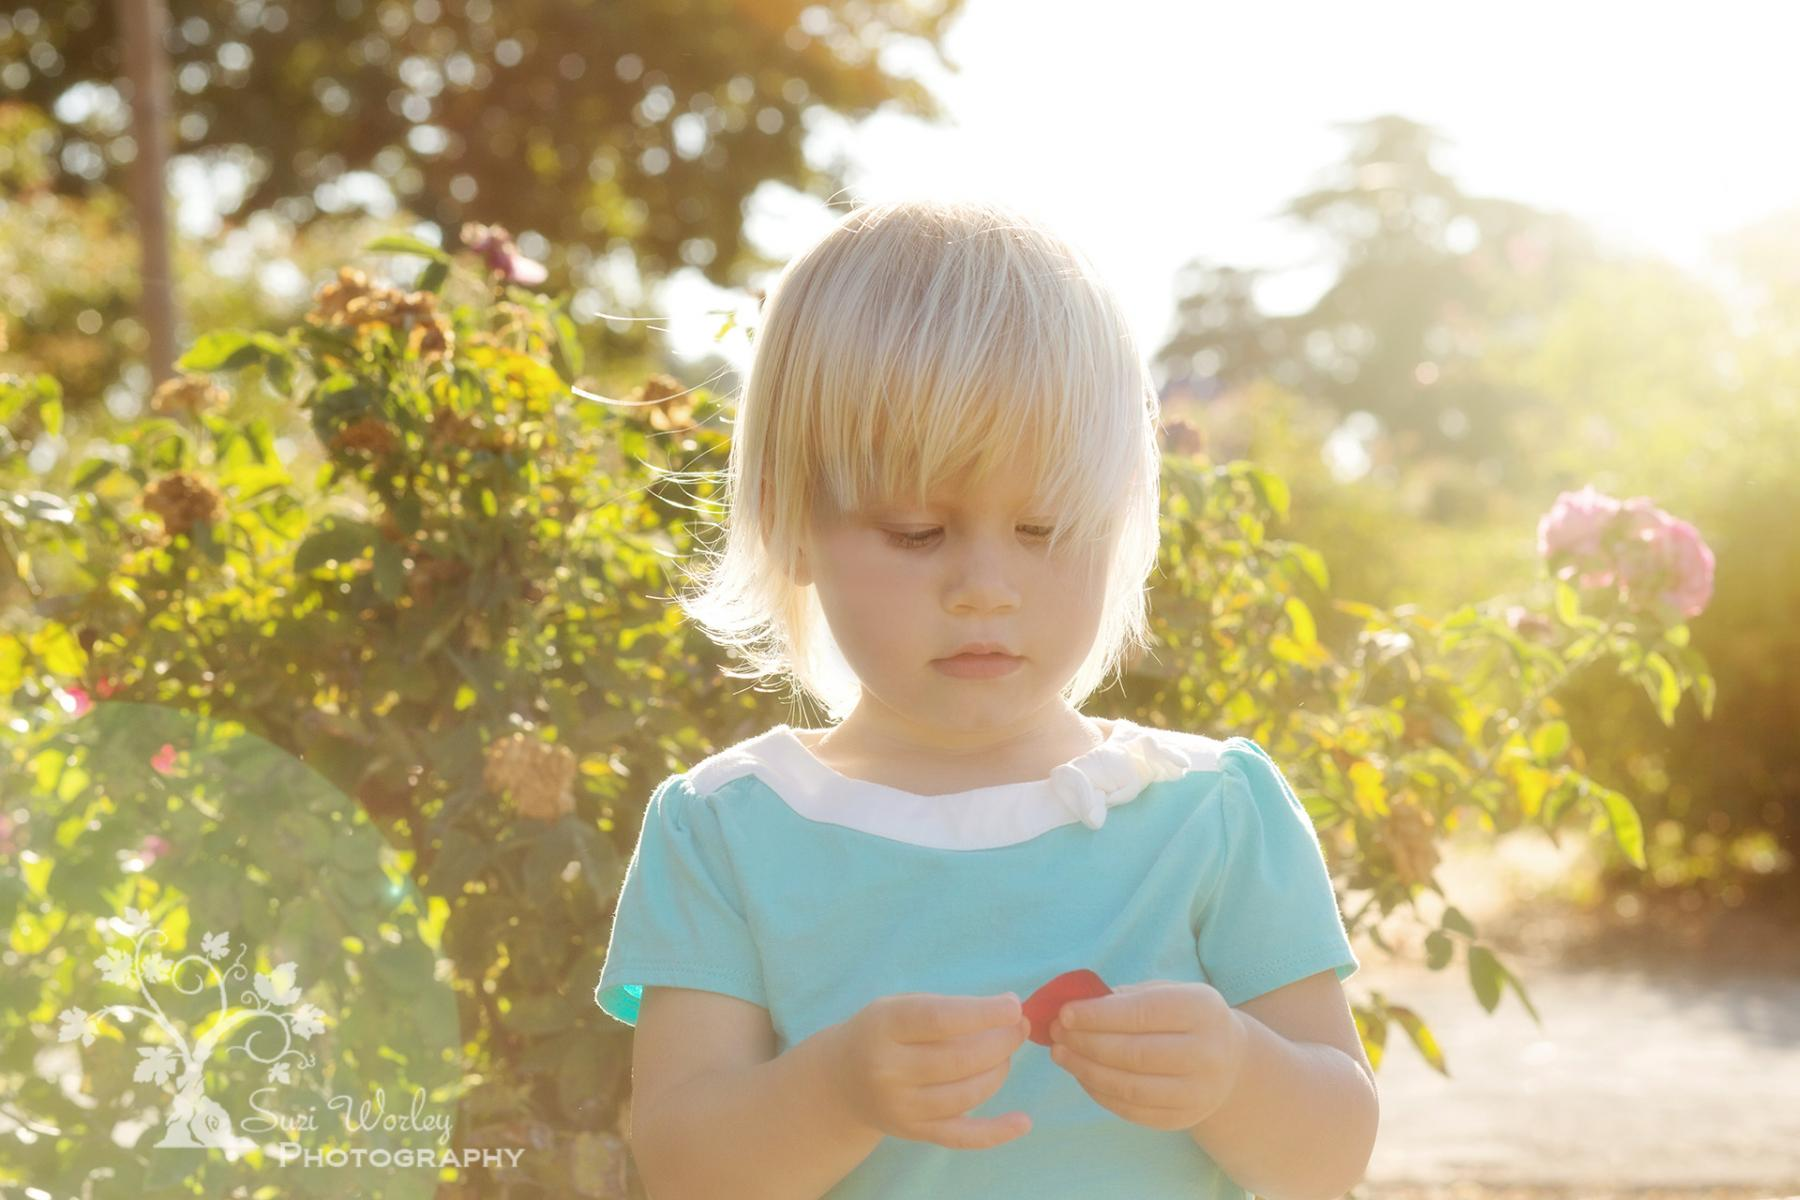 A toddler in the rose garden.  #SuziWorleyPhotography #Portraits #toddler #Daughter #flowers